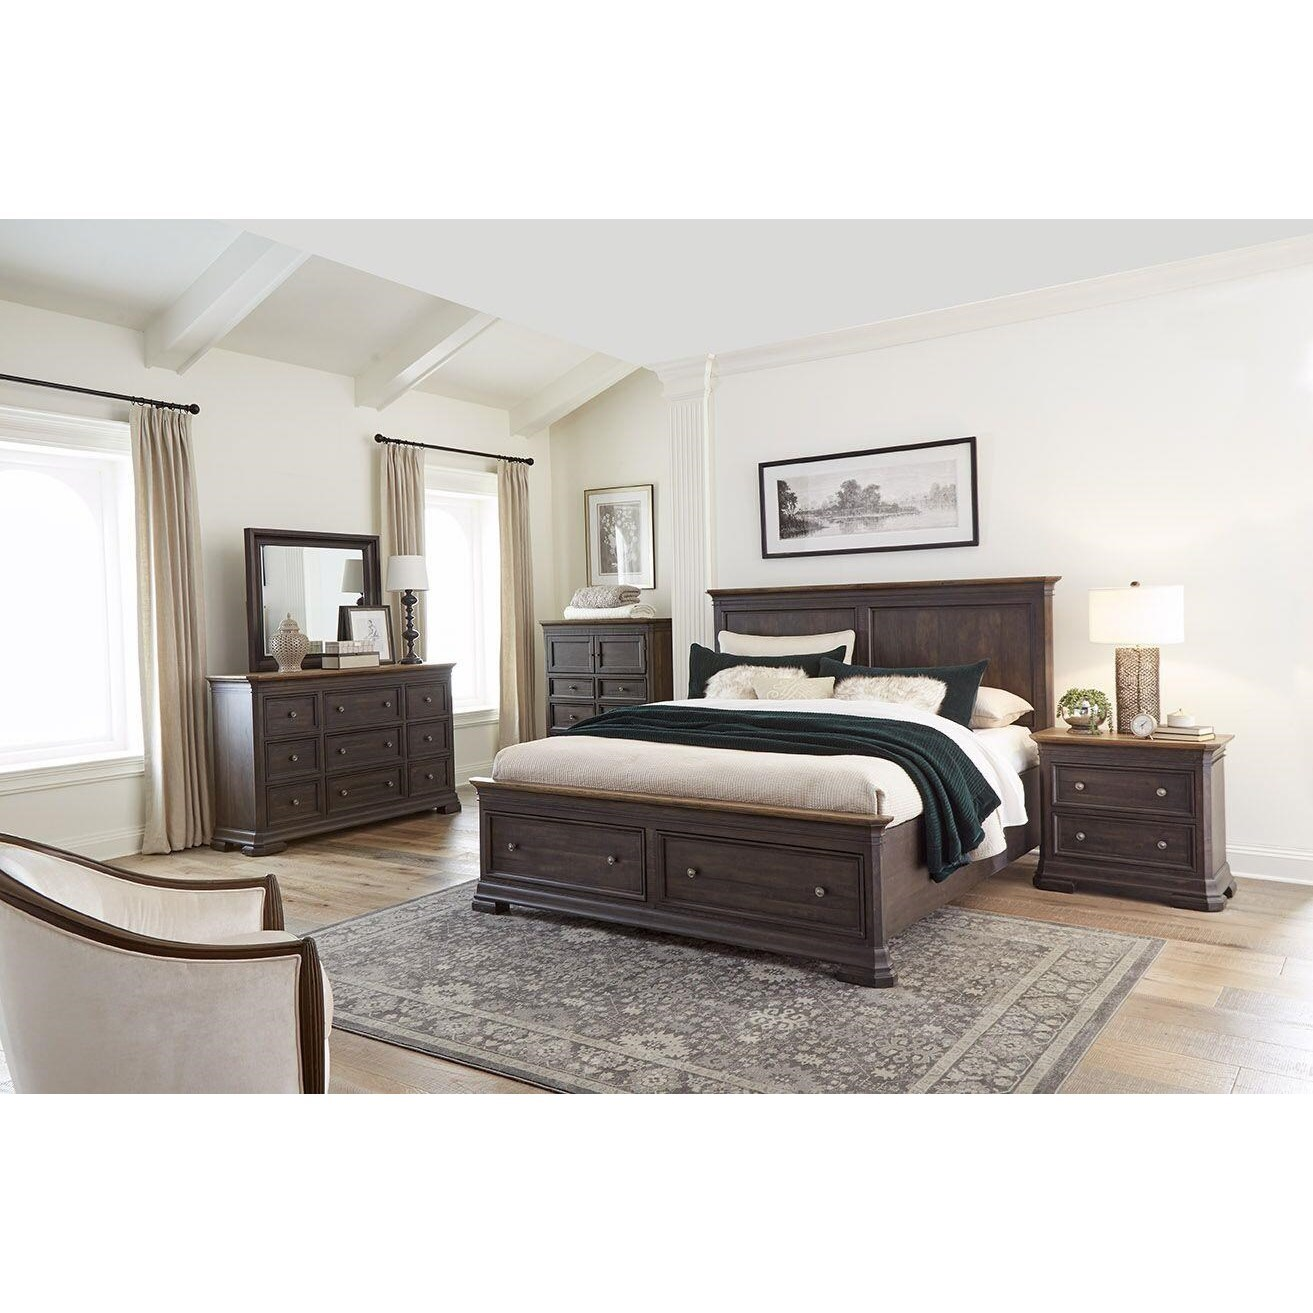 The Grand Louie Queen Bedroom Group by Harris Furniture at Powell's Furniture and Mattress